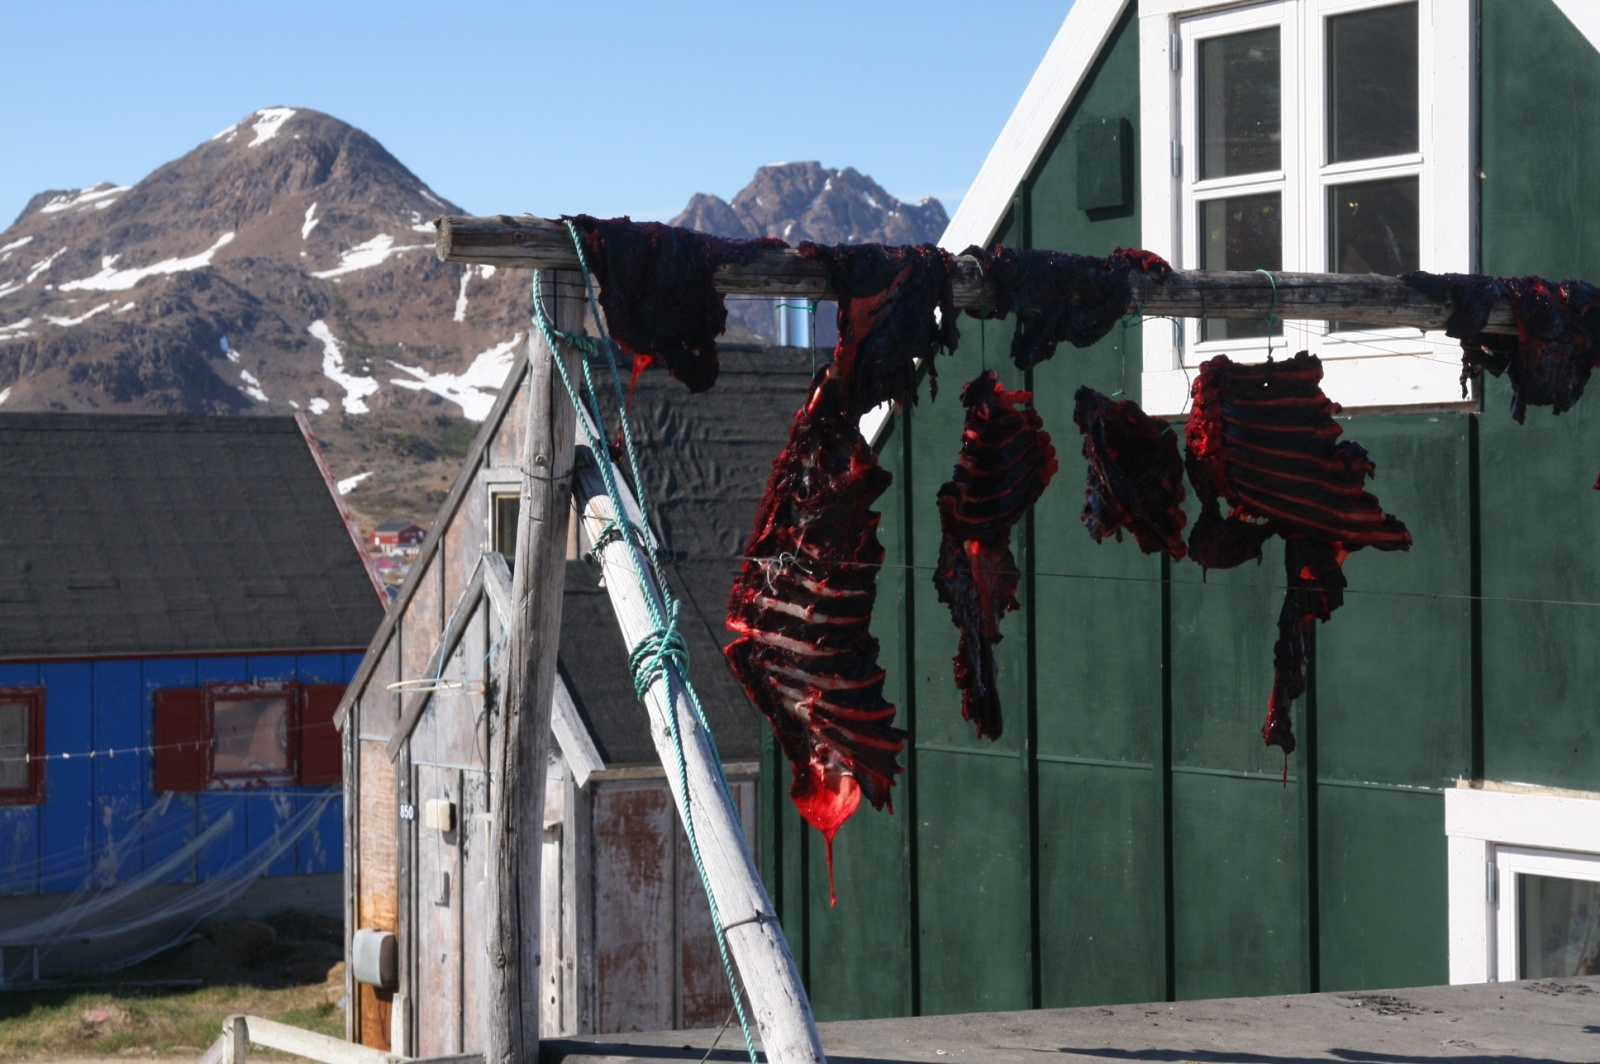 Raw seal meat is drying in the sun